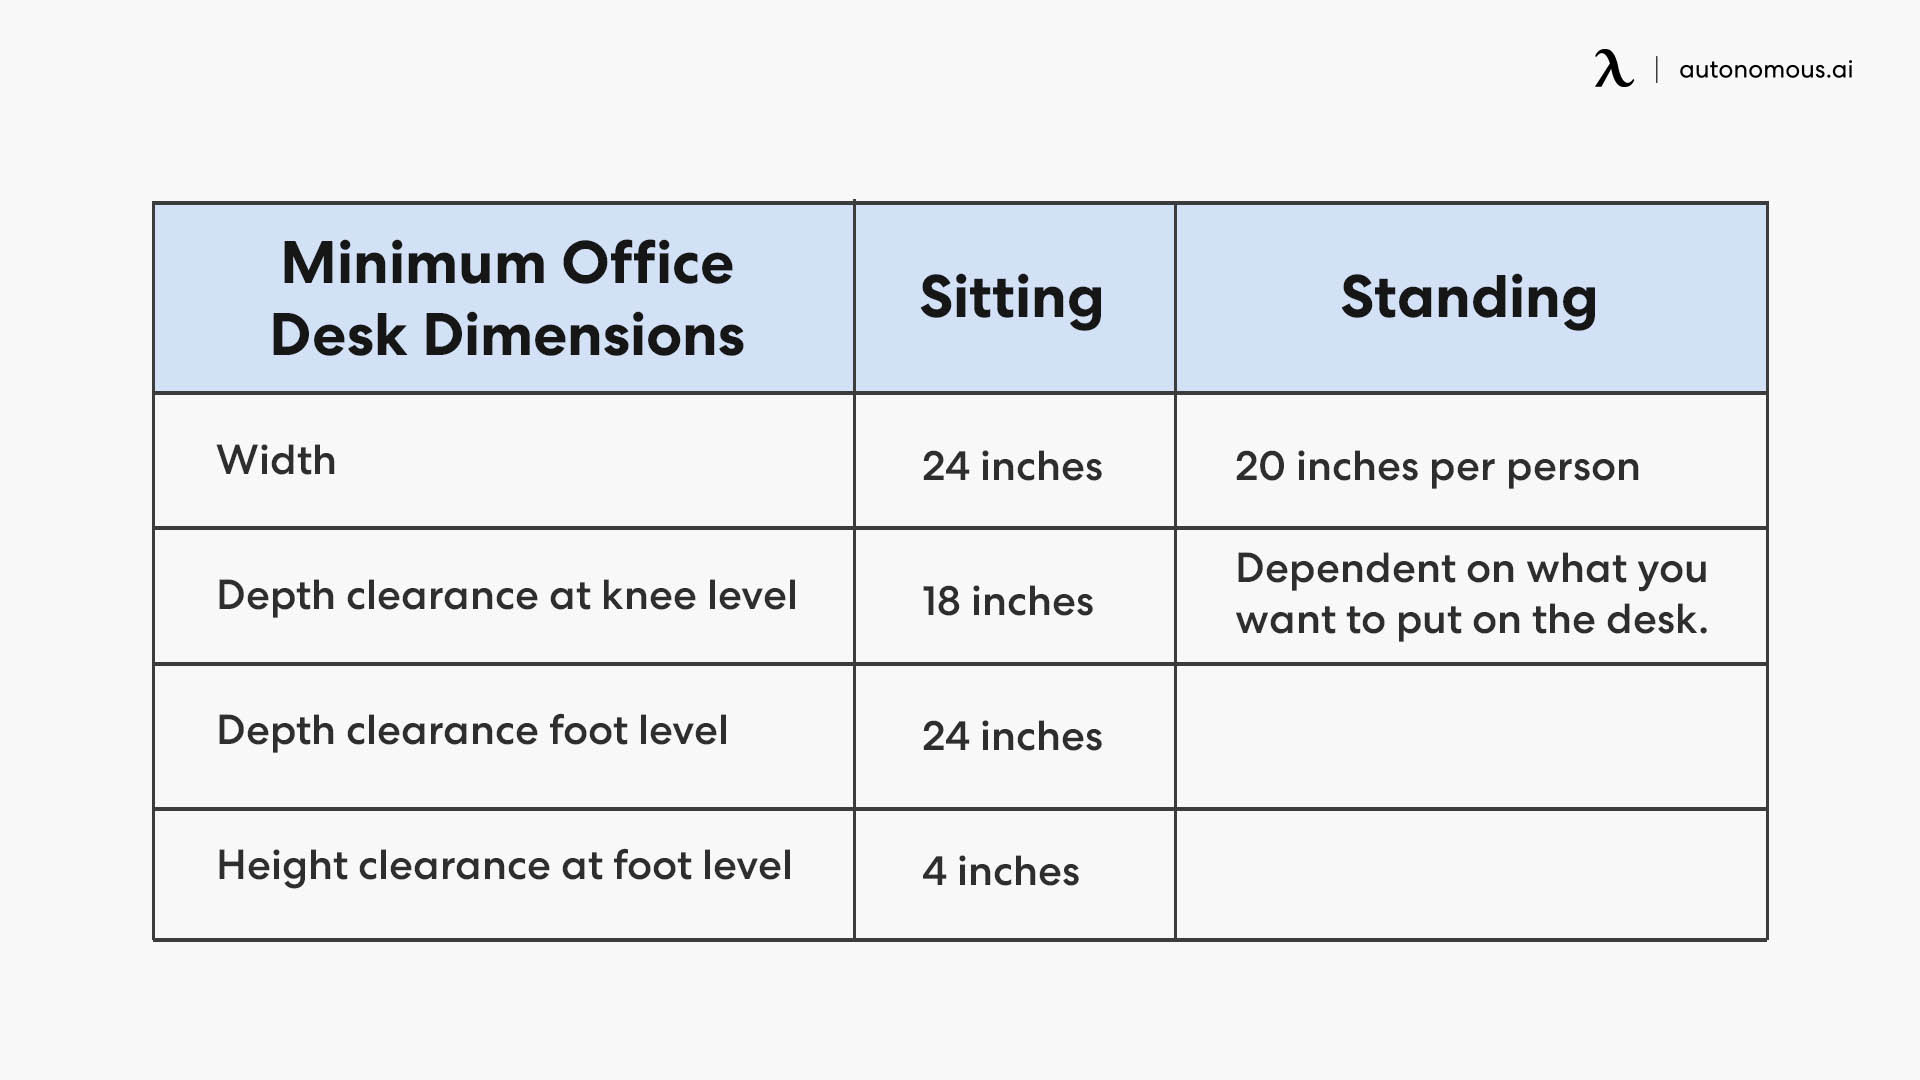 Minimum Office Desk Dimensions to Accommodate the Human Body